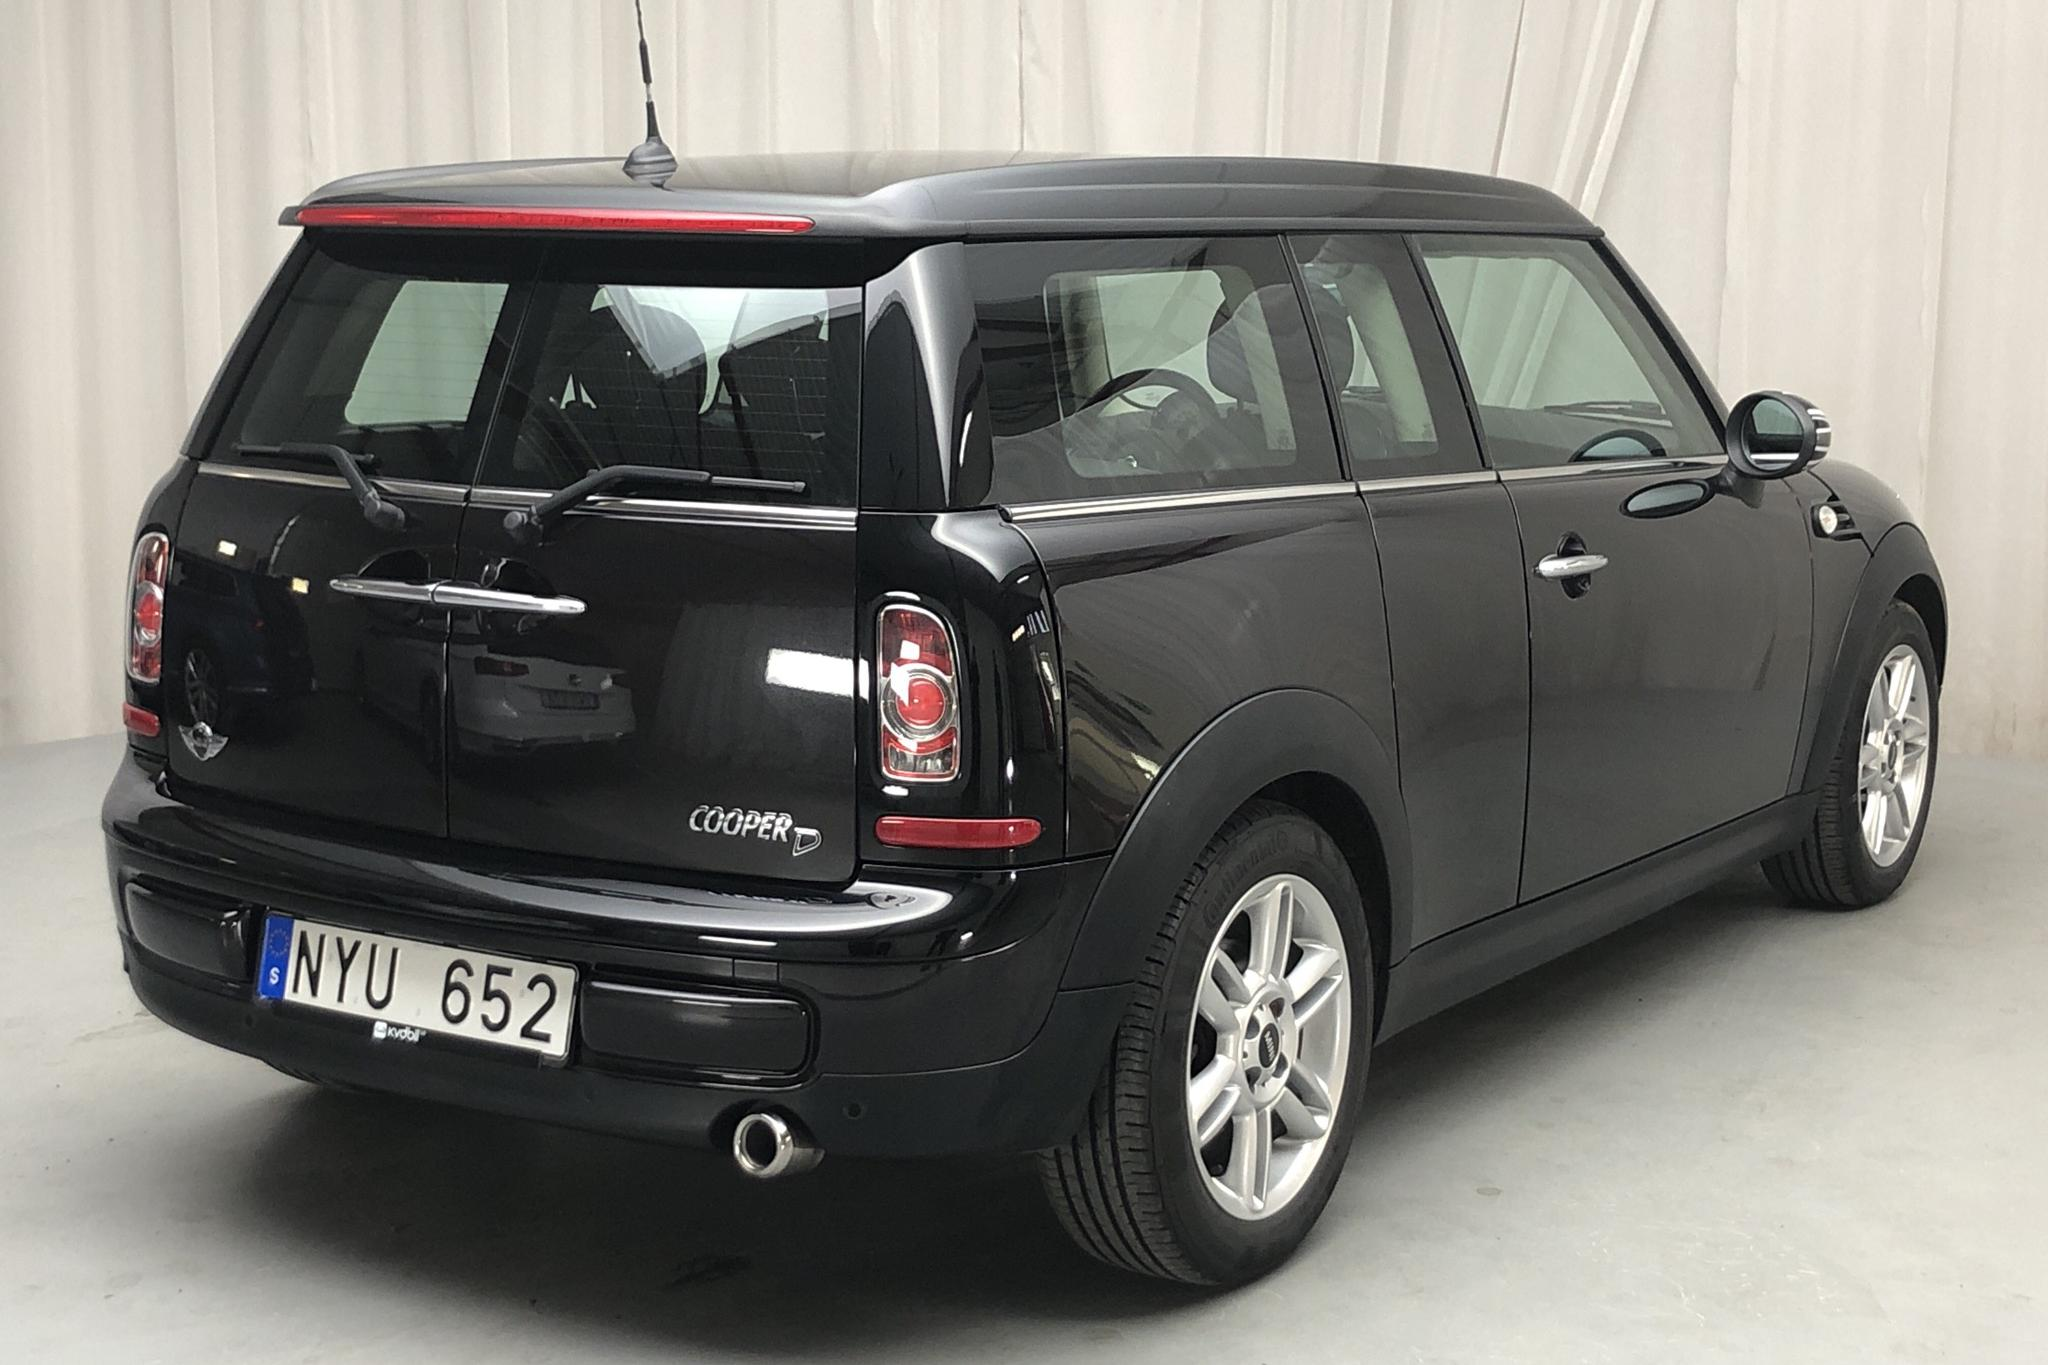 MINI Cooper D 1.6 Clubman (112hk) - 90 990 km - Manual - brown - 2013